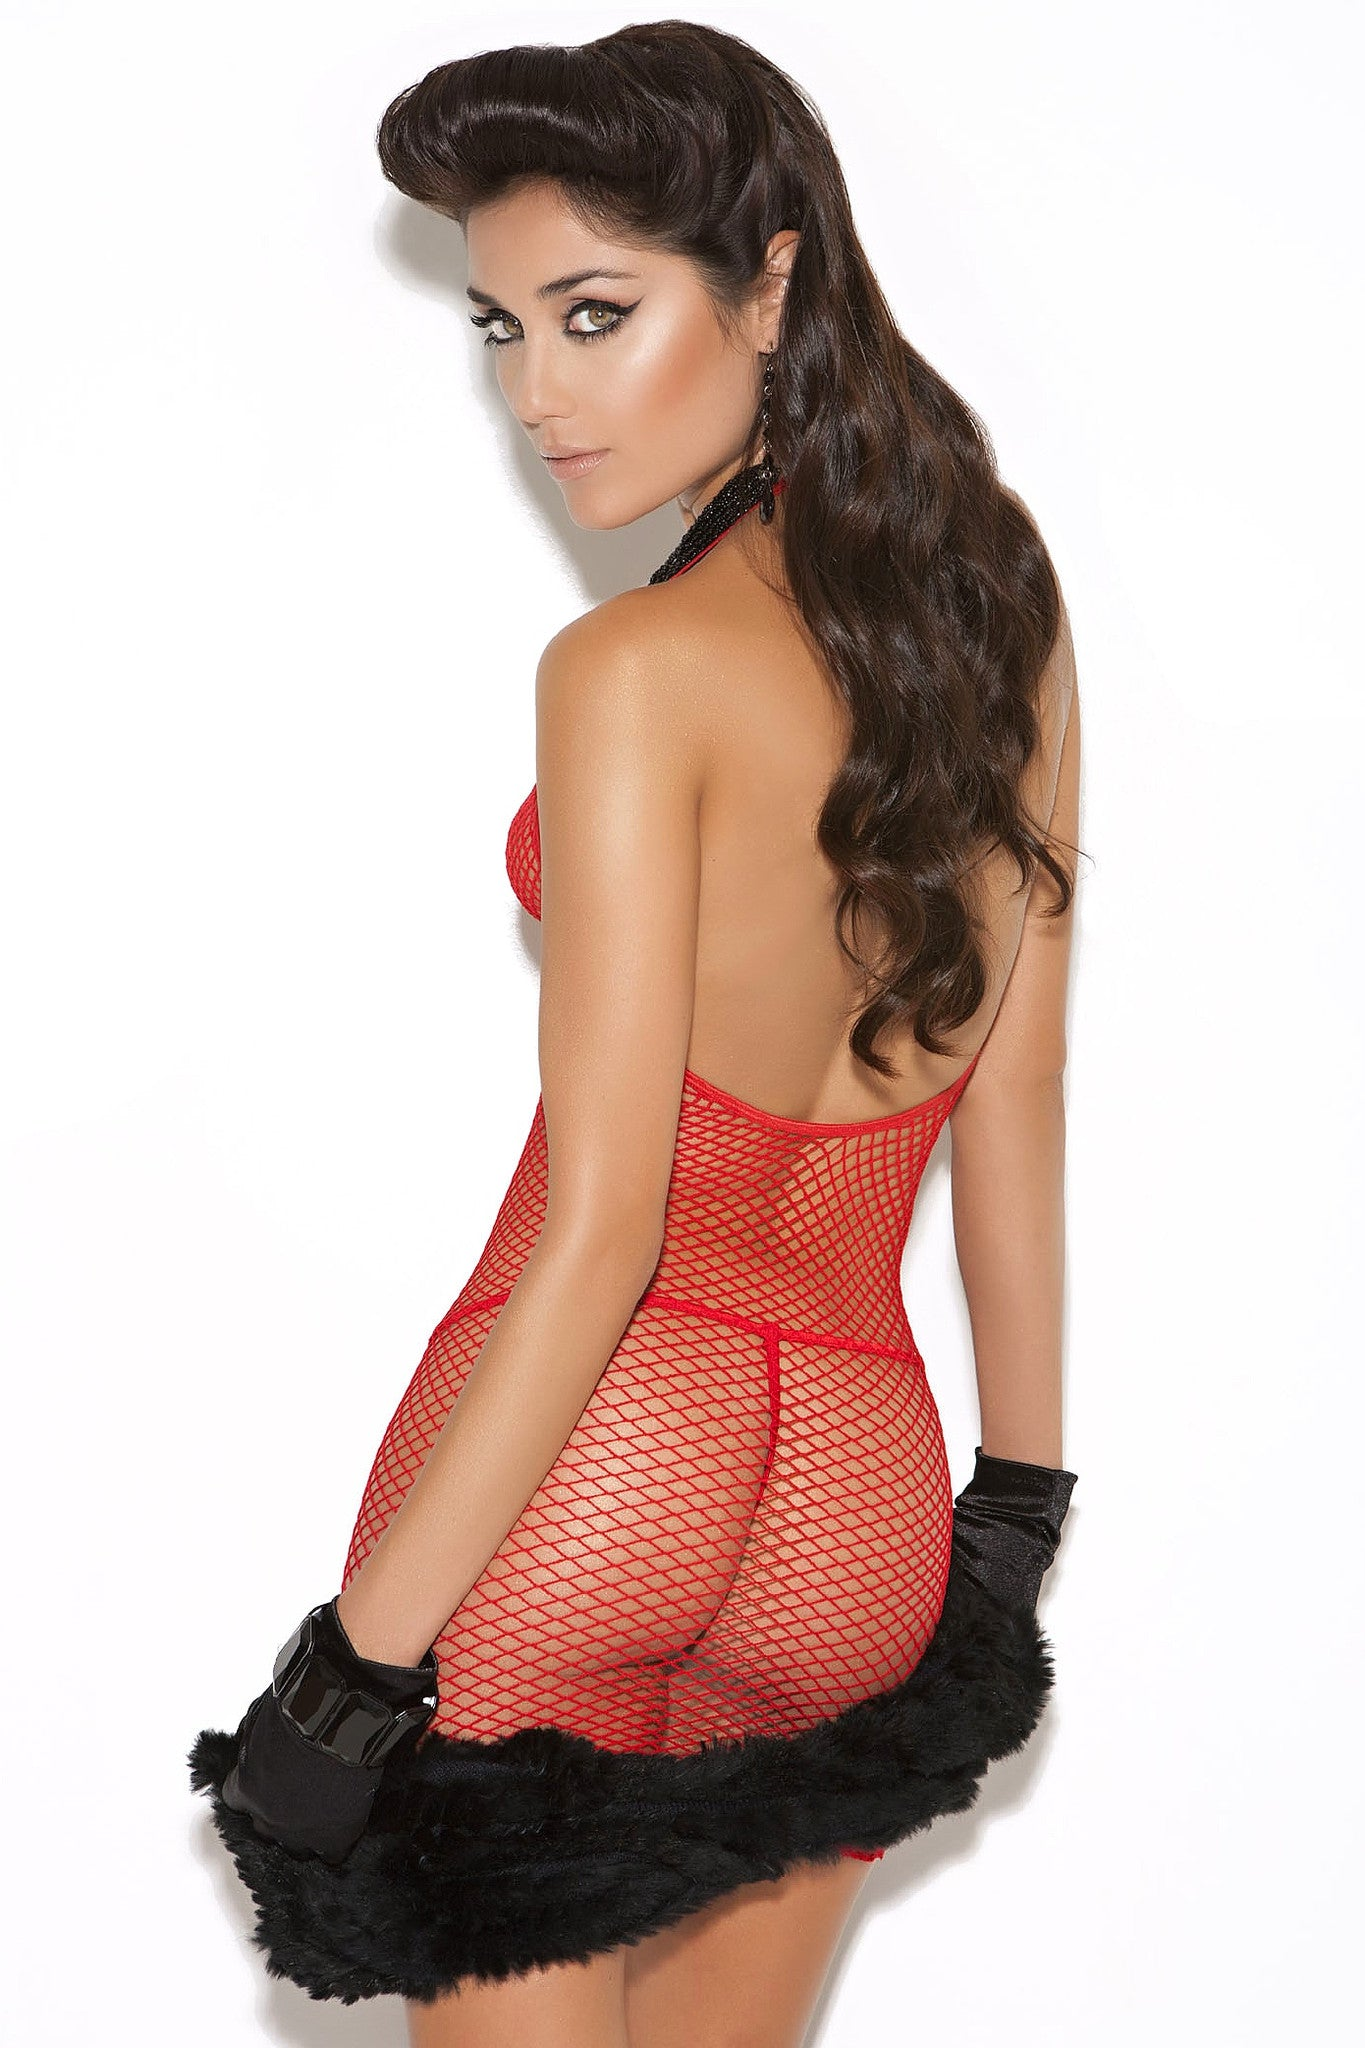 EM-8547 Red diamond net dress - Sexylingerieland